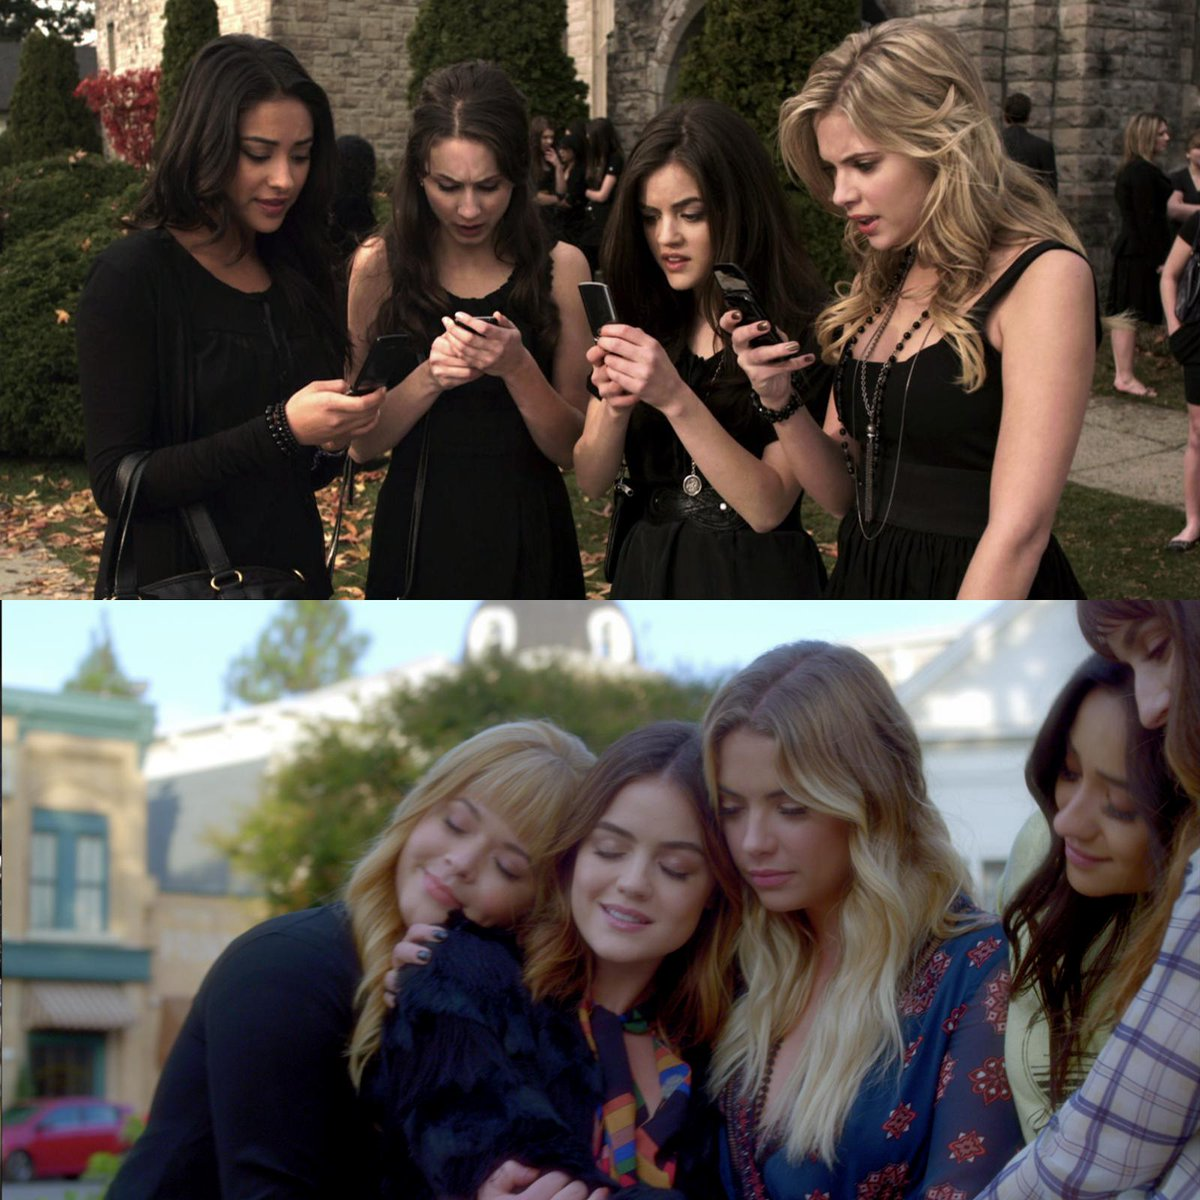 Fans are pretty upset that 'Pretty Little Liars' is leaving Netflix: 'No one asked for this'